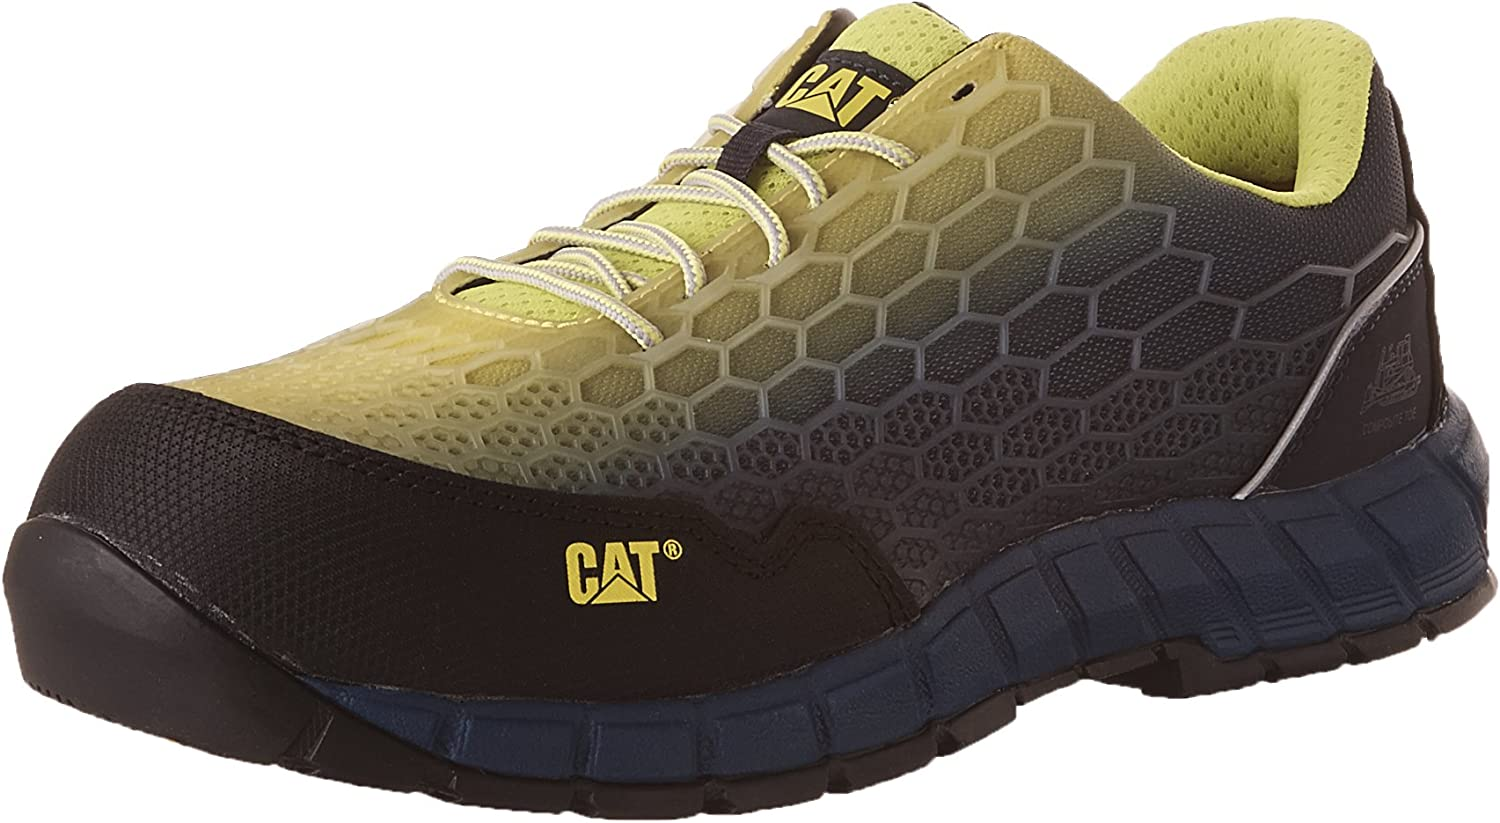 Caterpillar Footwear Men's Expedient Fire and Safety Boots